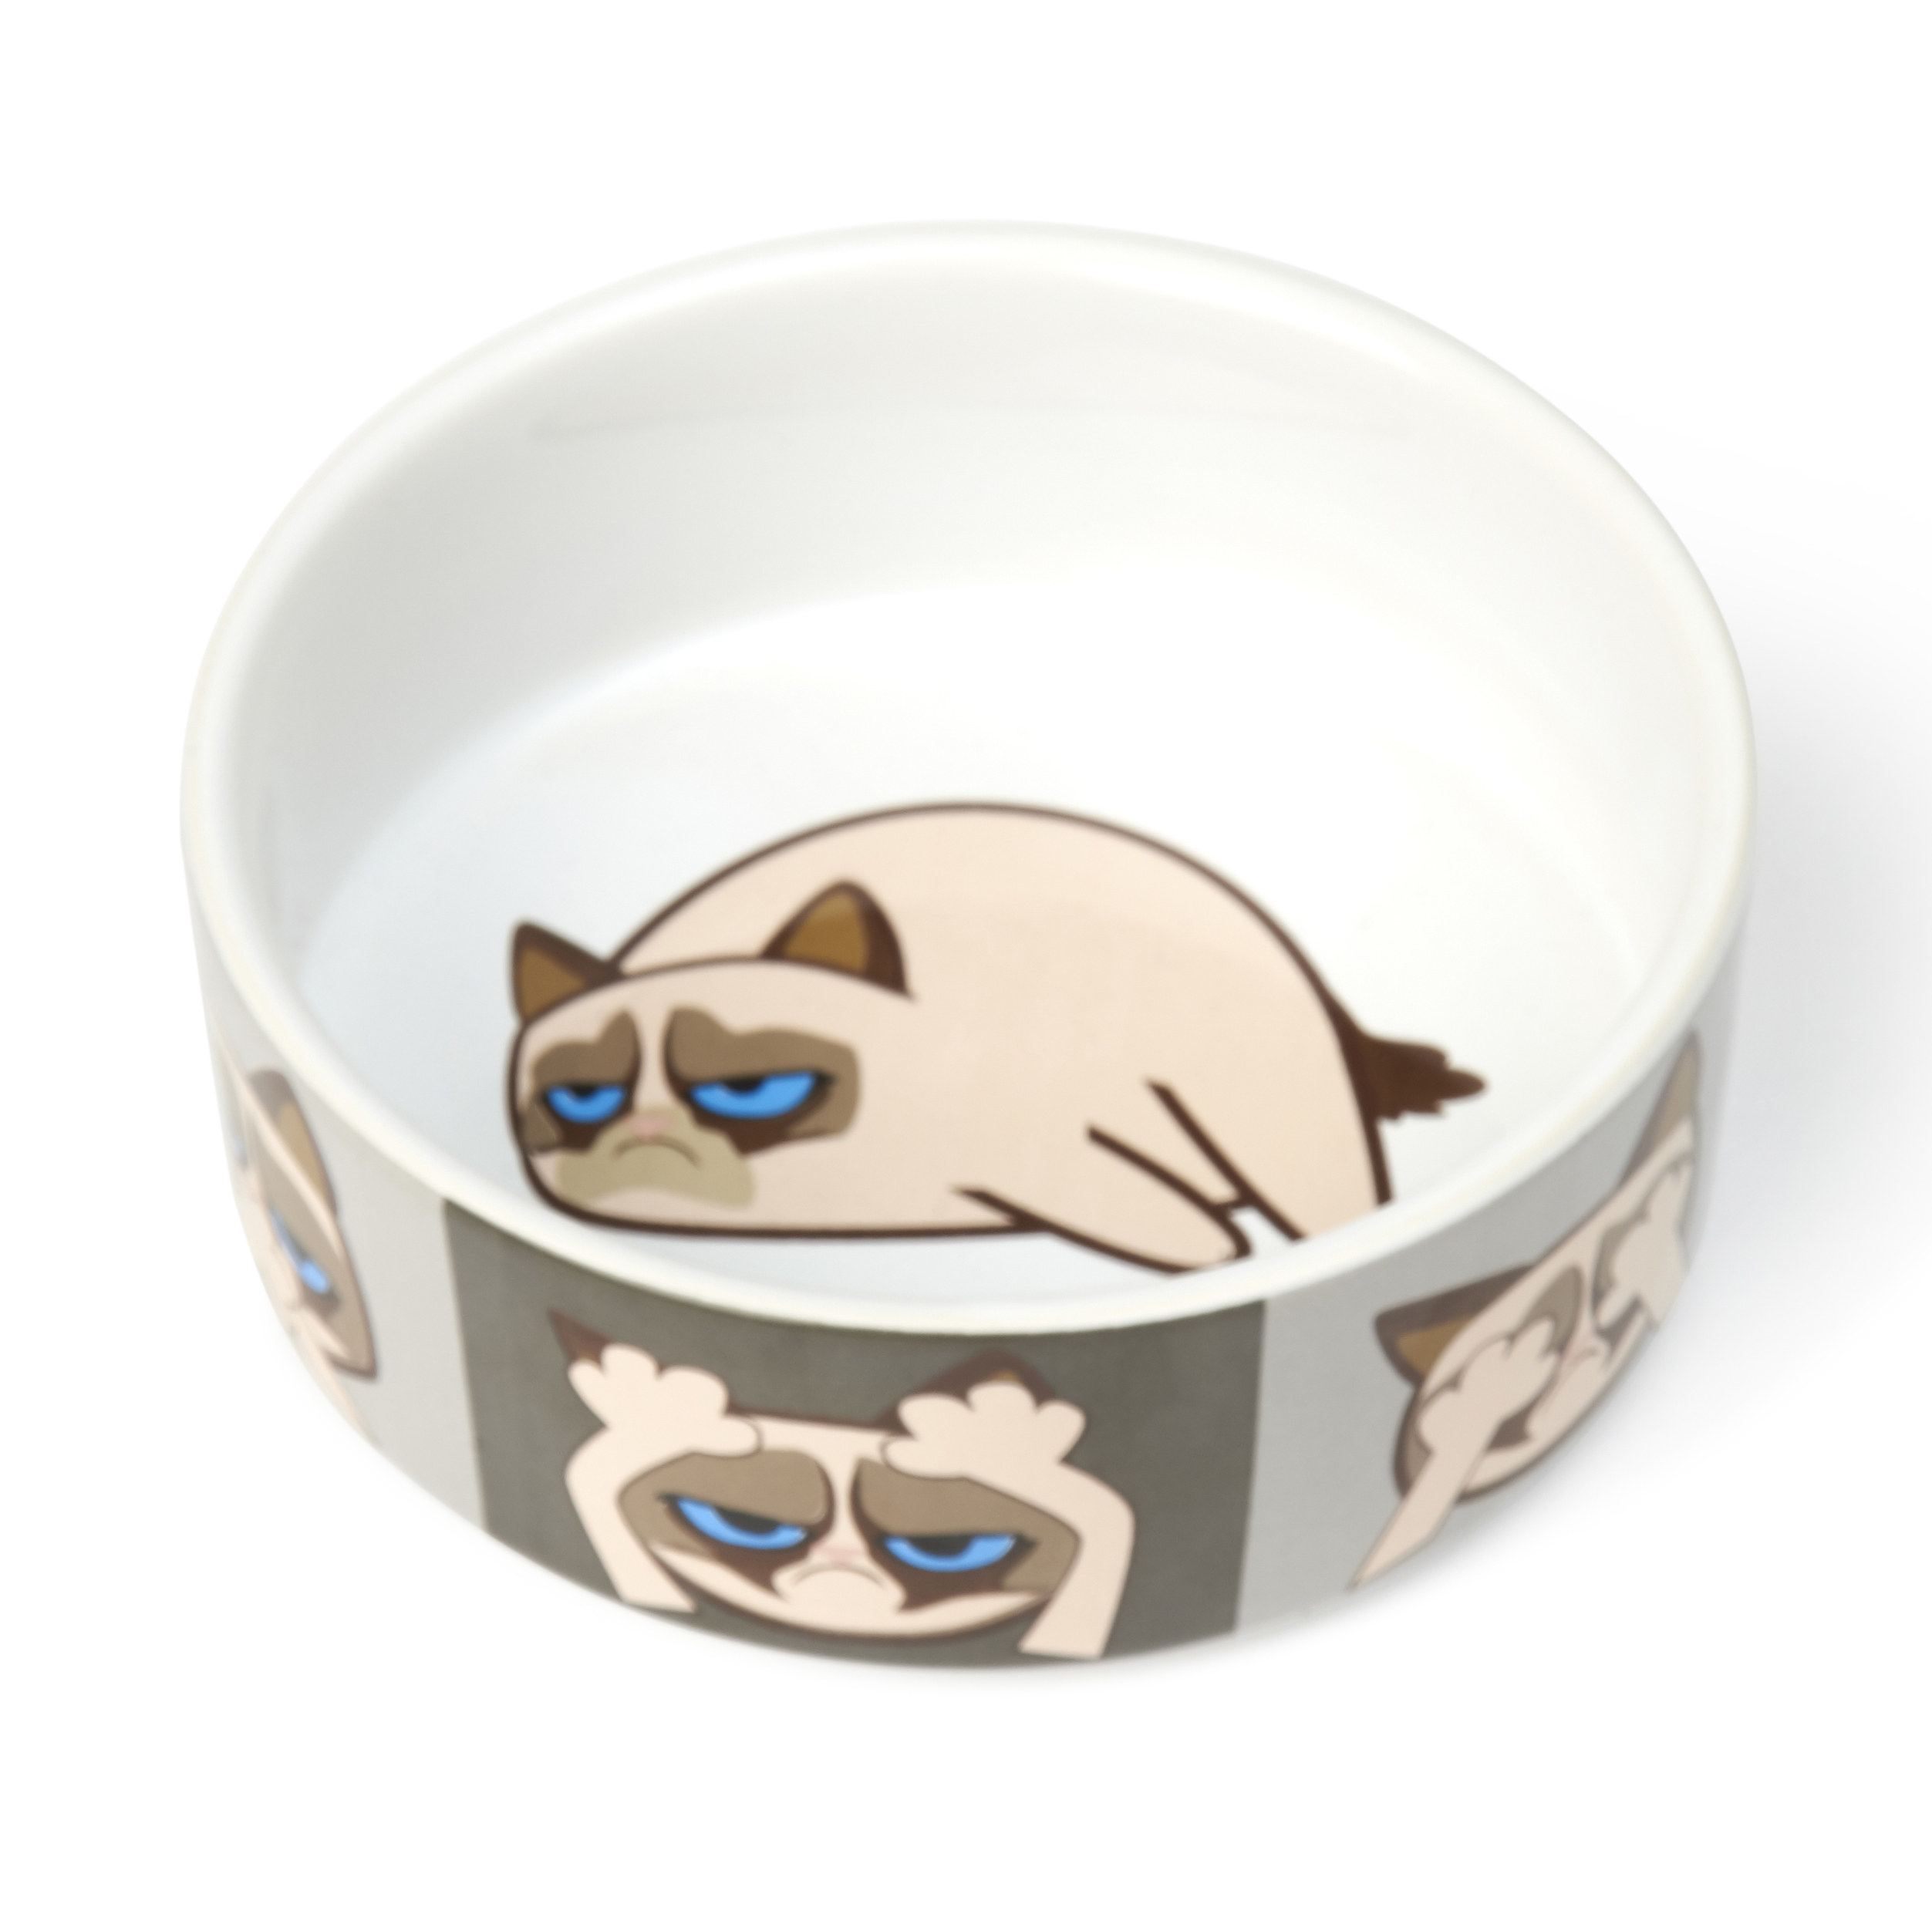 An animated grumpy cat drawn on the inside and along the rim of a white cat food bowl